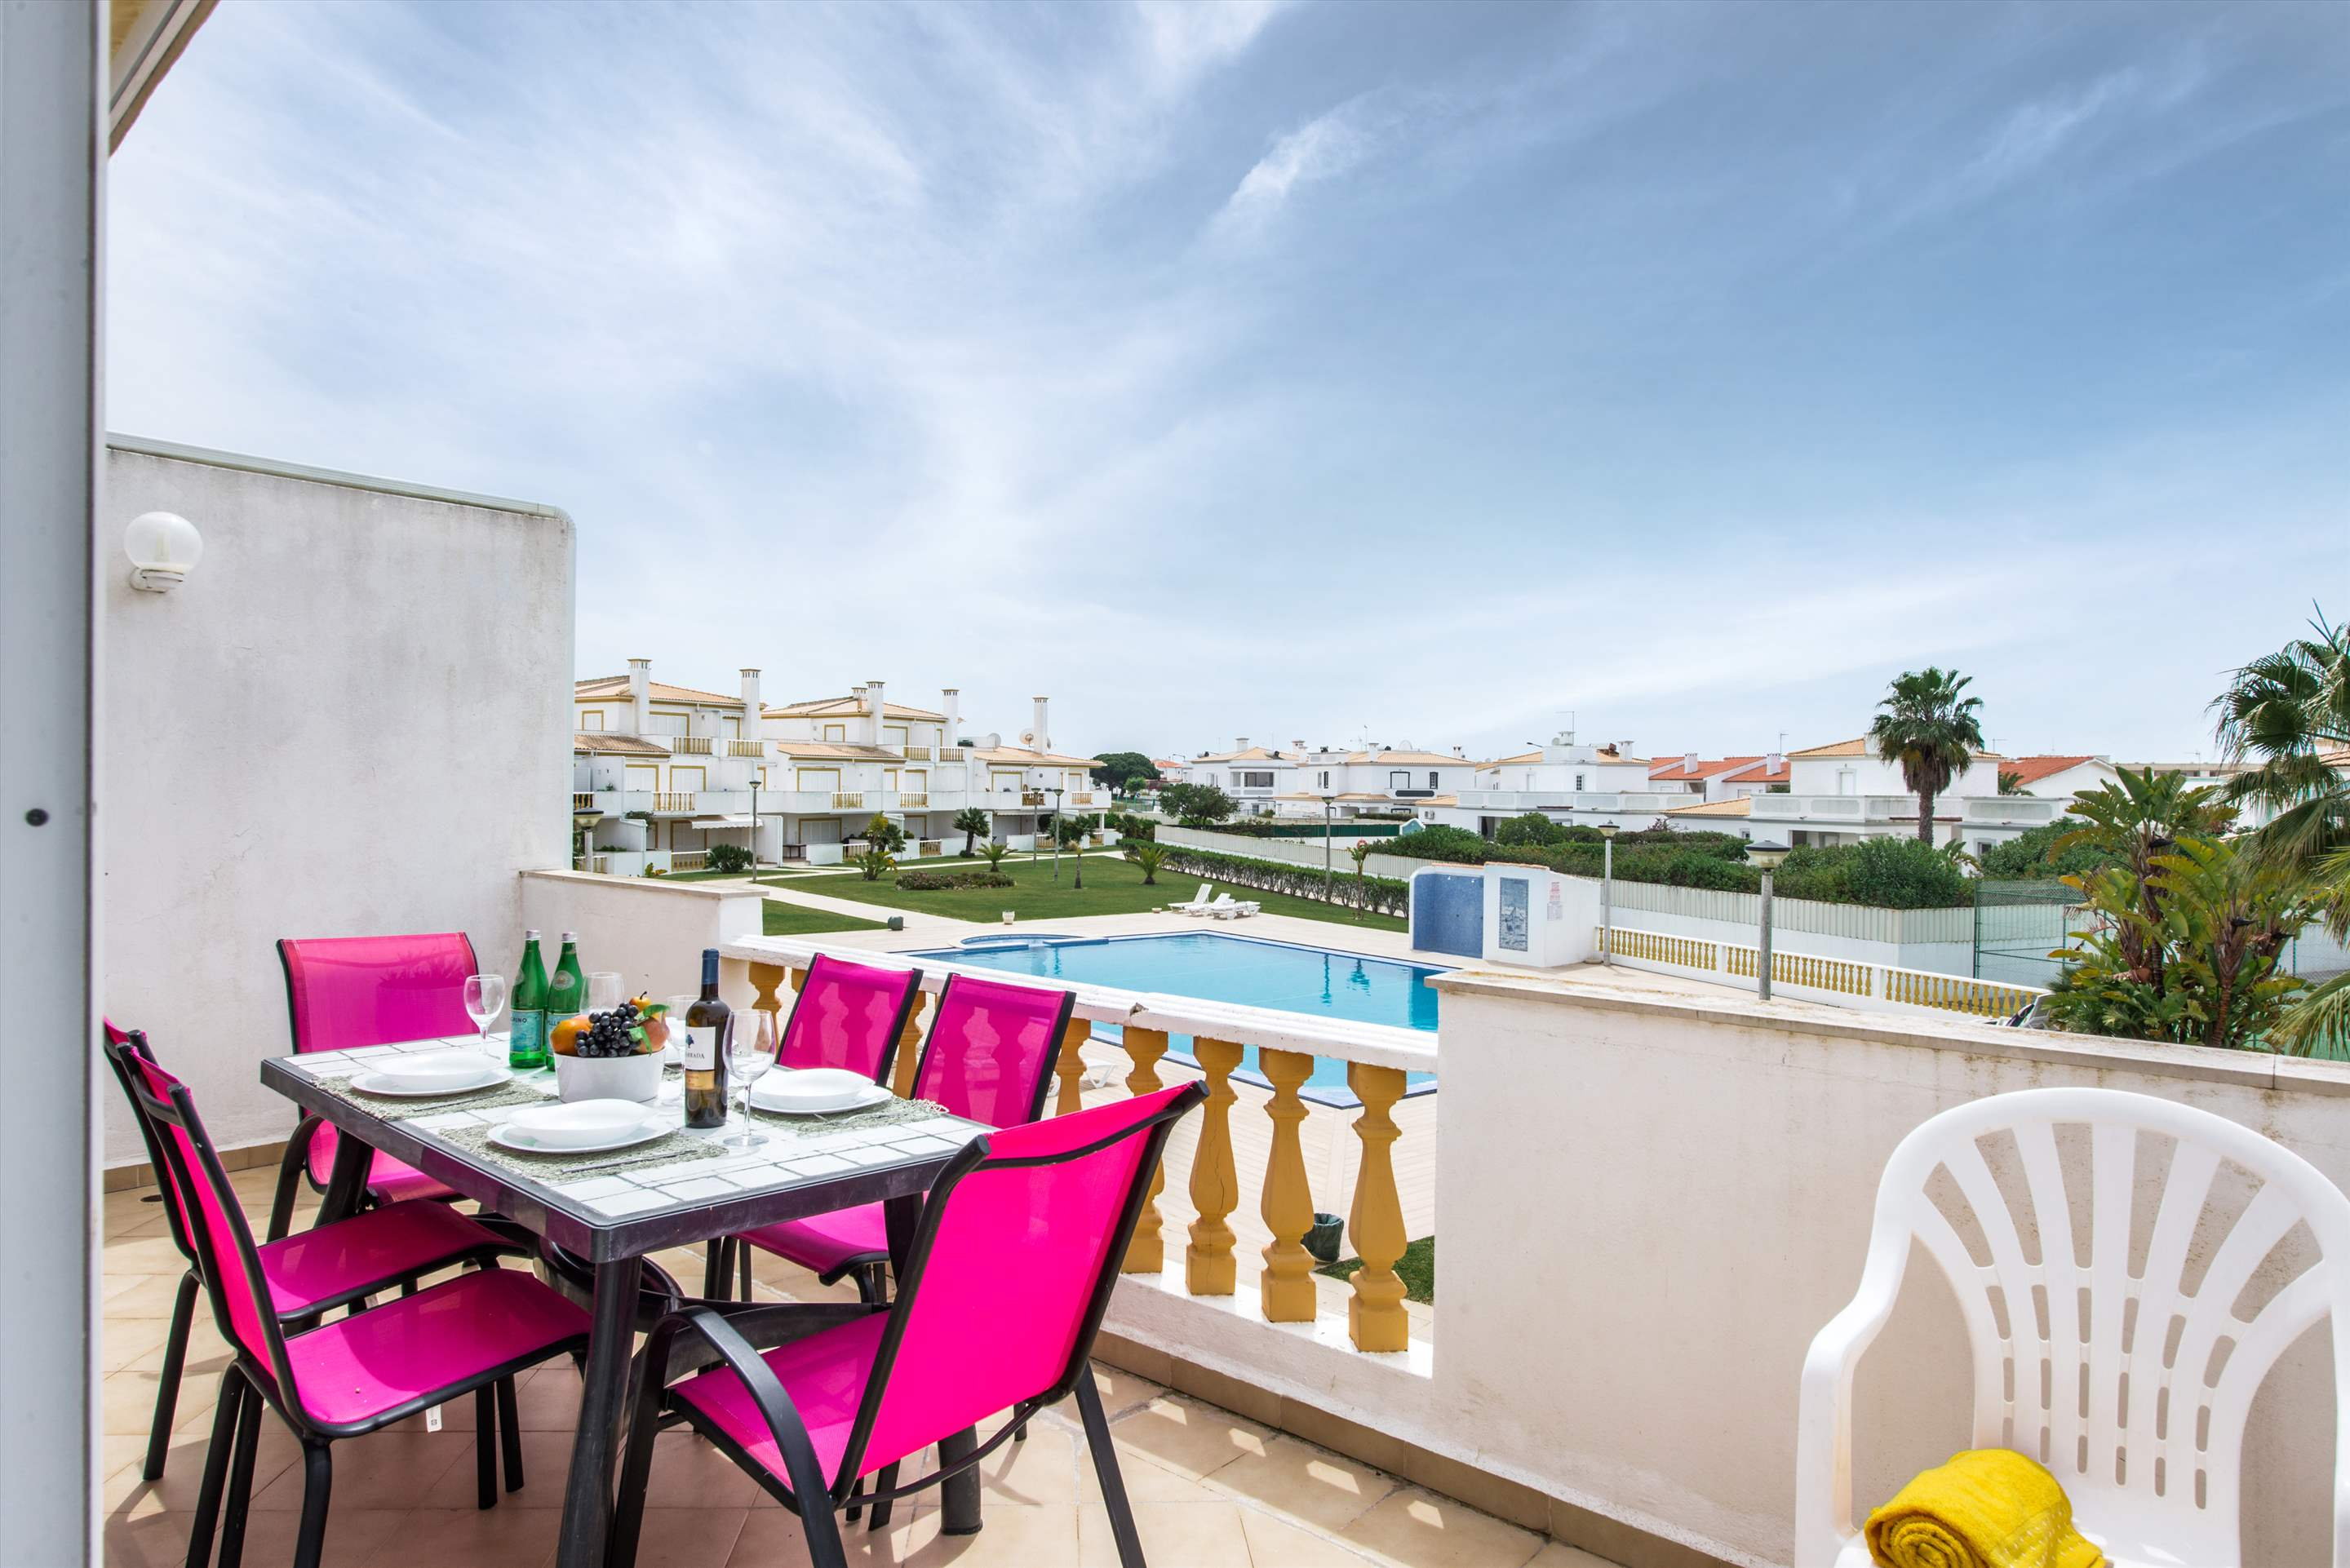 Apt O Monte, Up to 6 Persons, 3 bedroom apartment in Gale, Vale da Parra and Guia, Algarve Photo #4